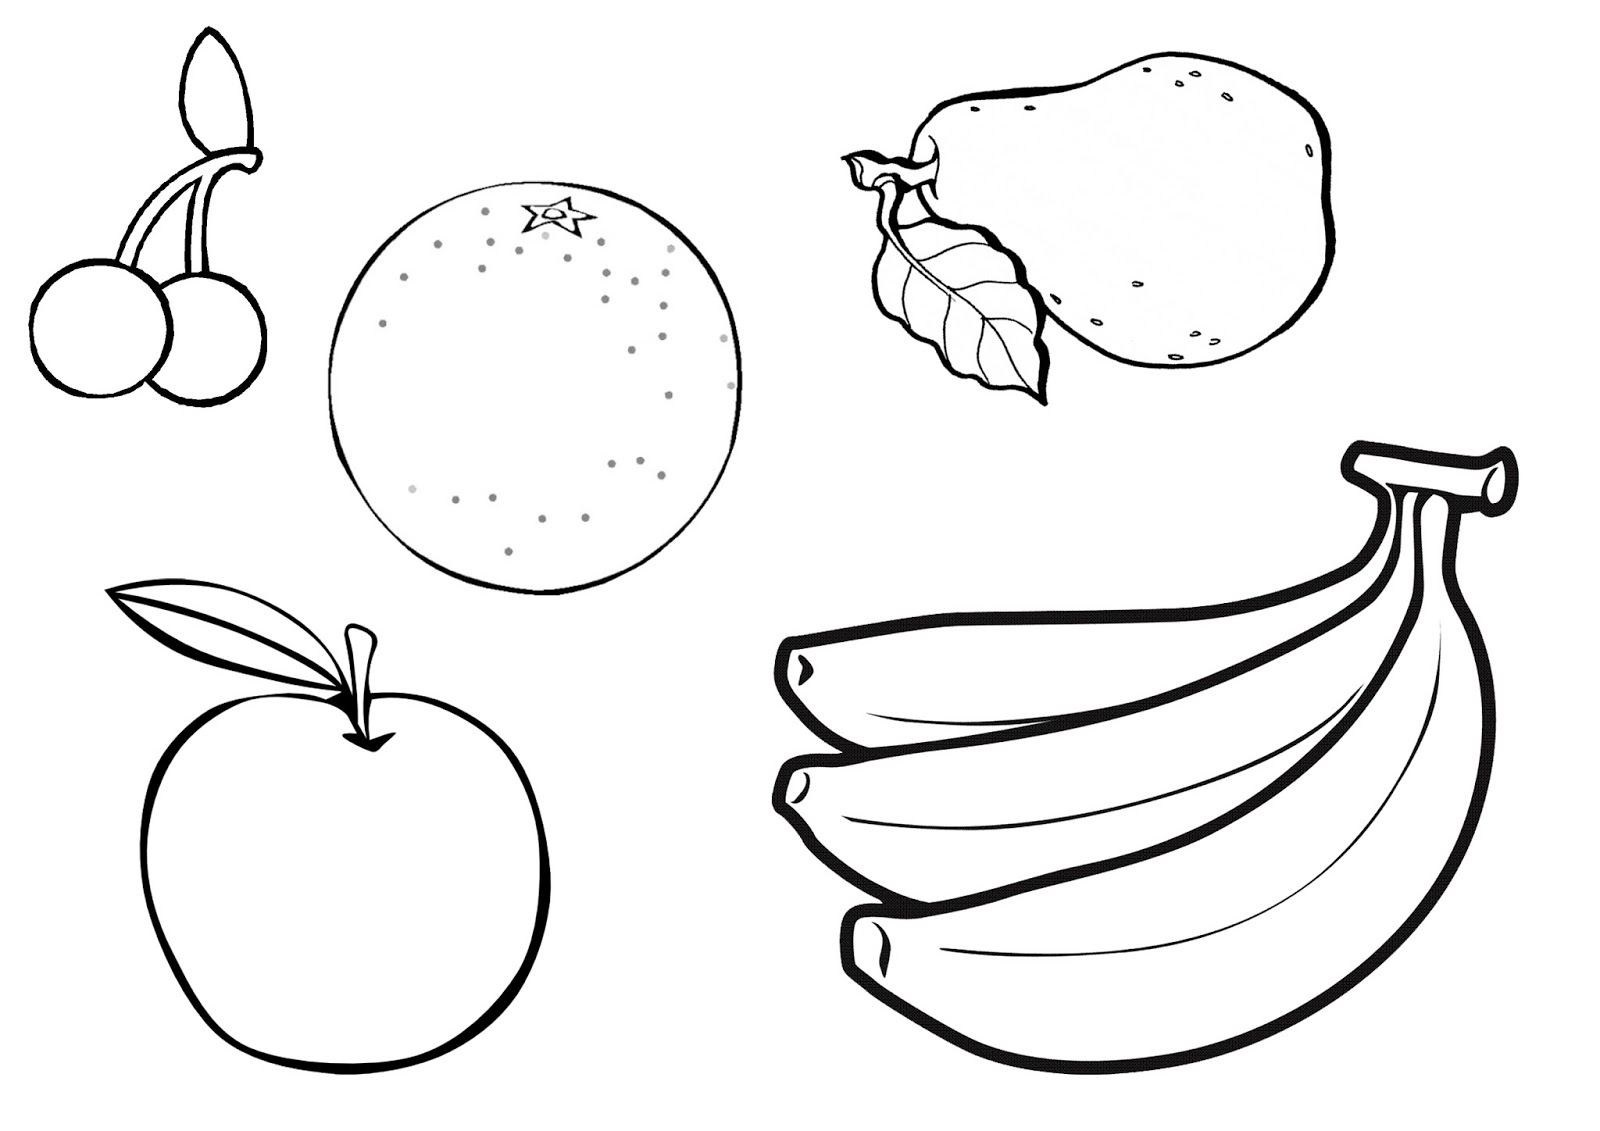 how to draw fruit in a bowl fruit bowl template fruit basket coloring pages fruit fruit in a how draw to bowl